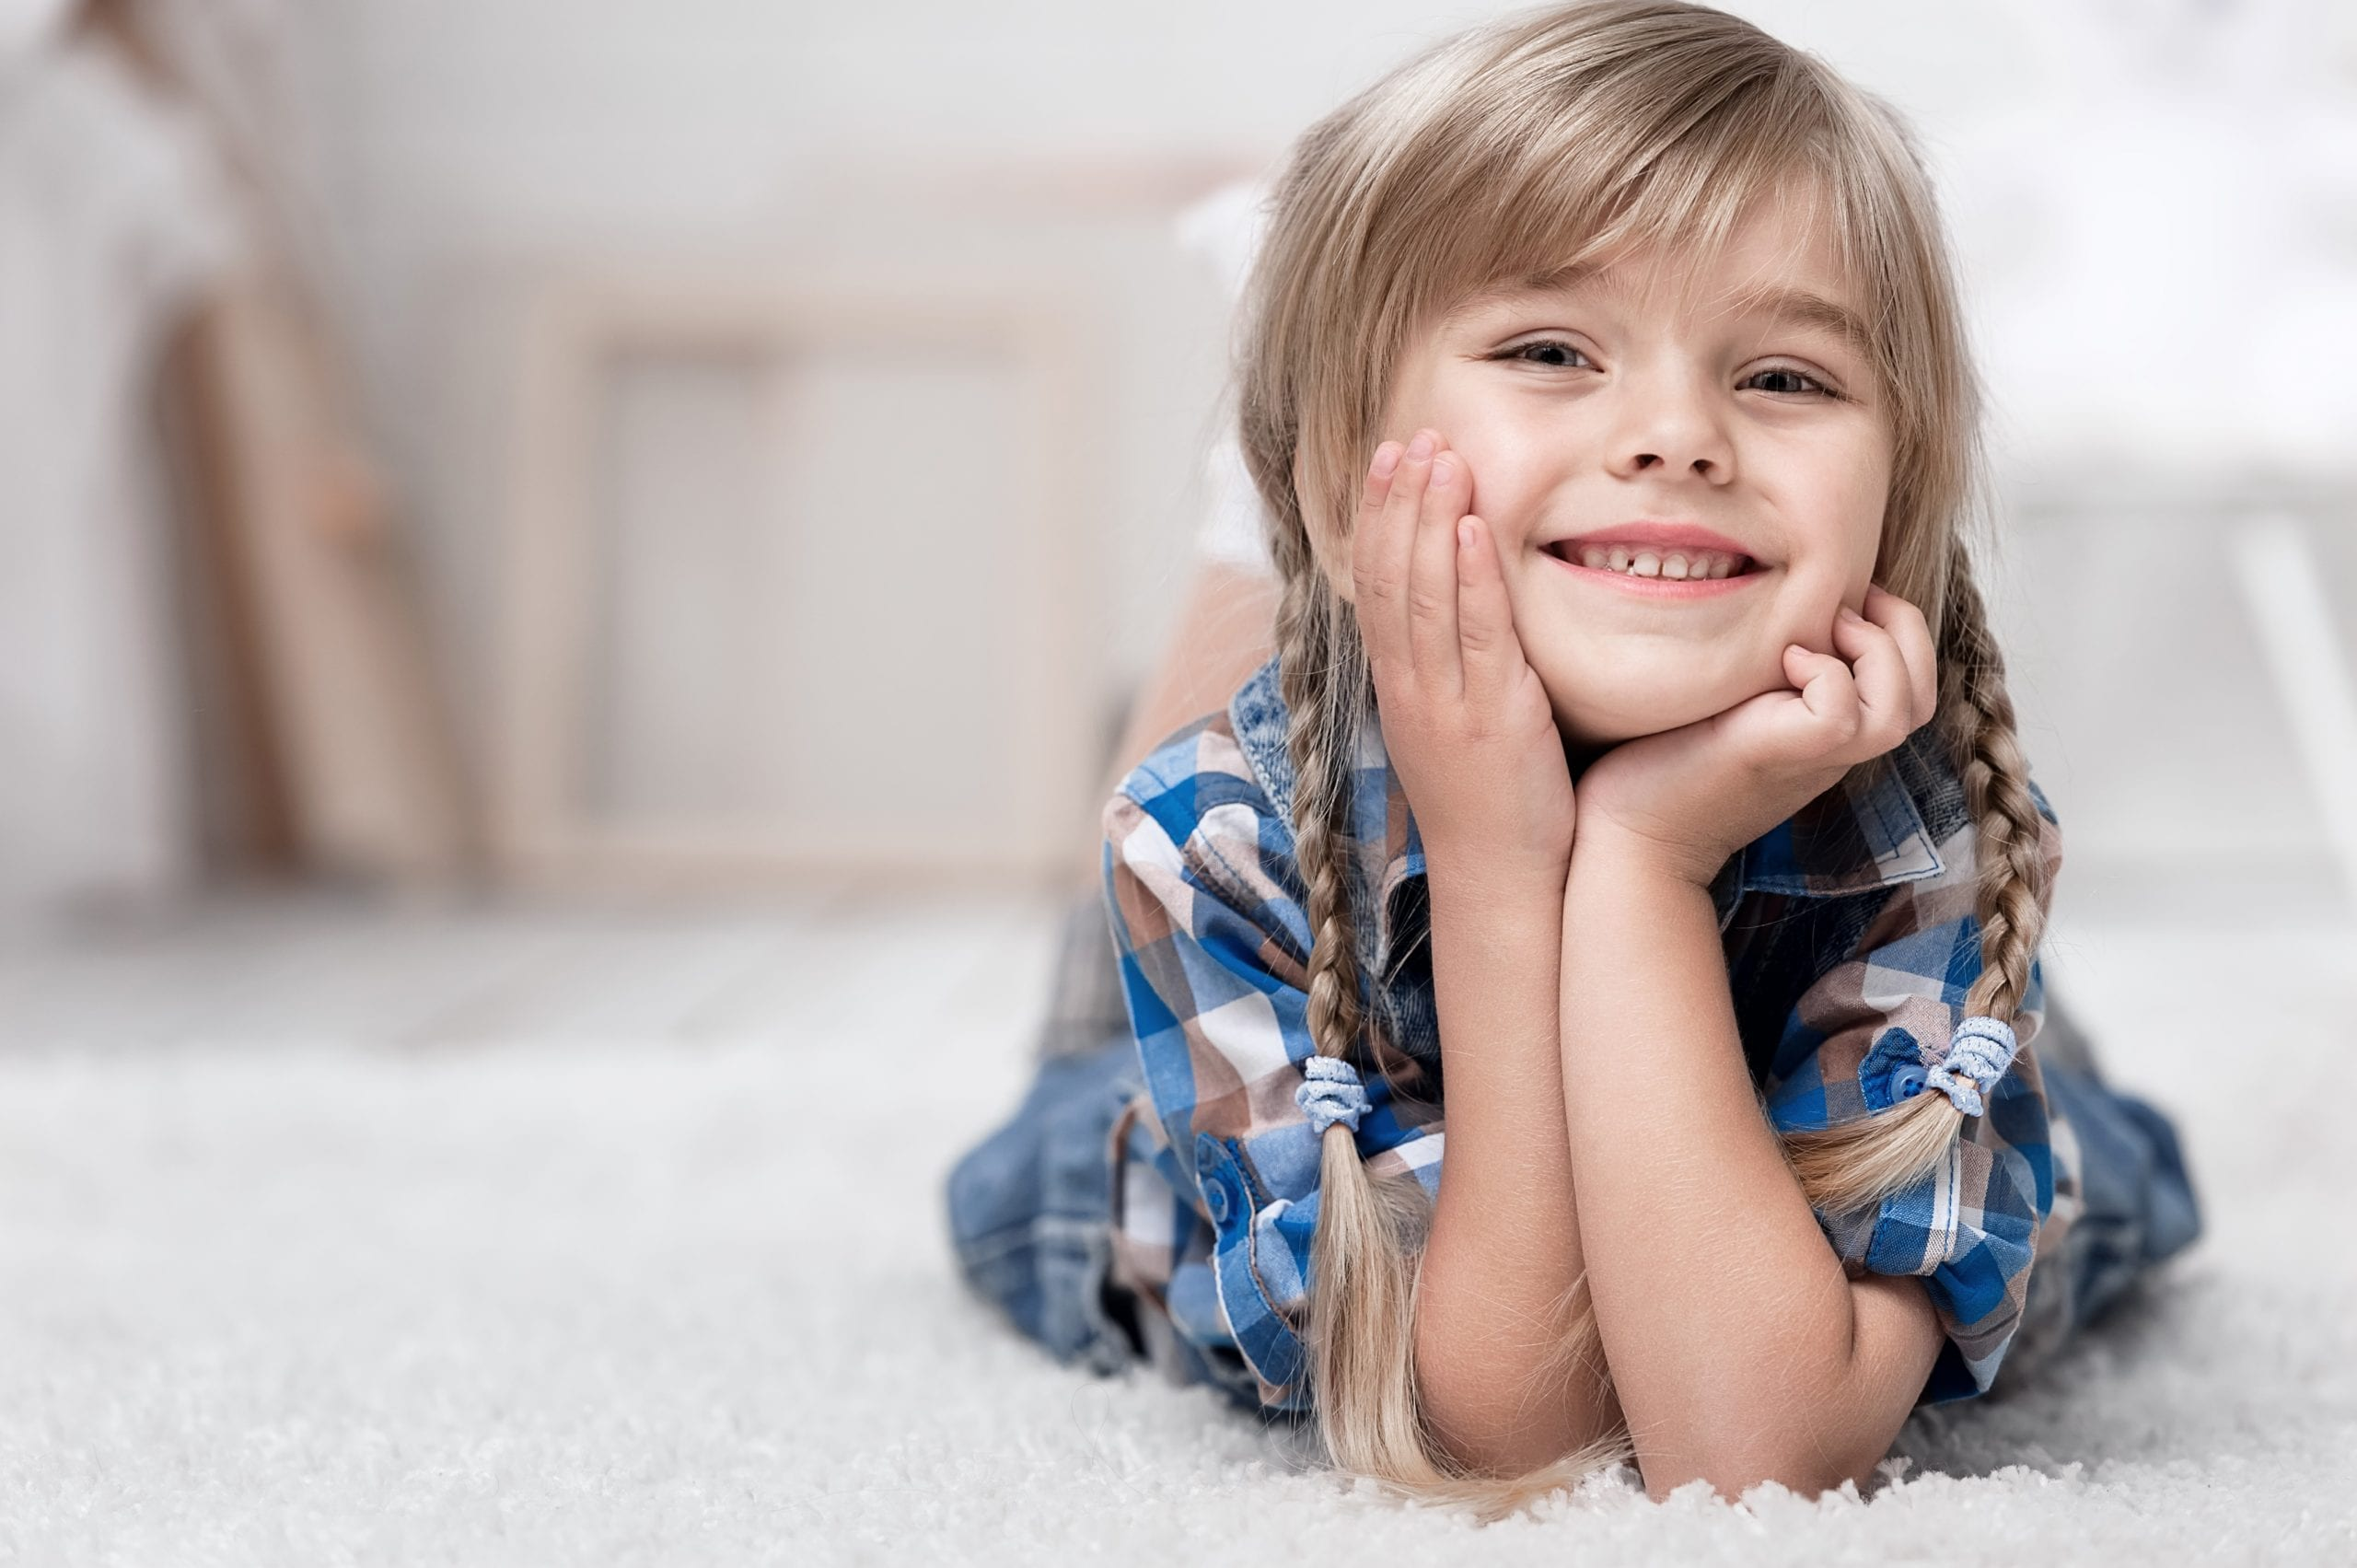 Routine Carpet Cleaning to Save Your Carpets